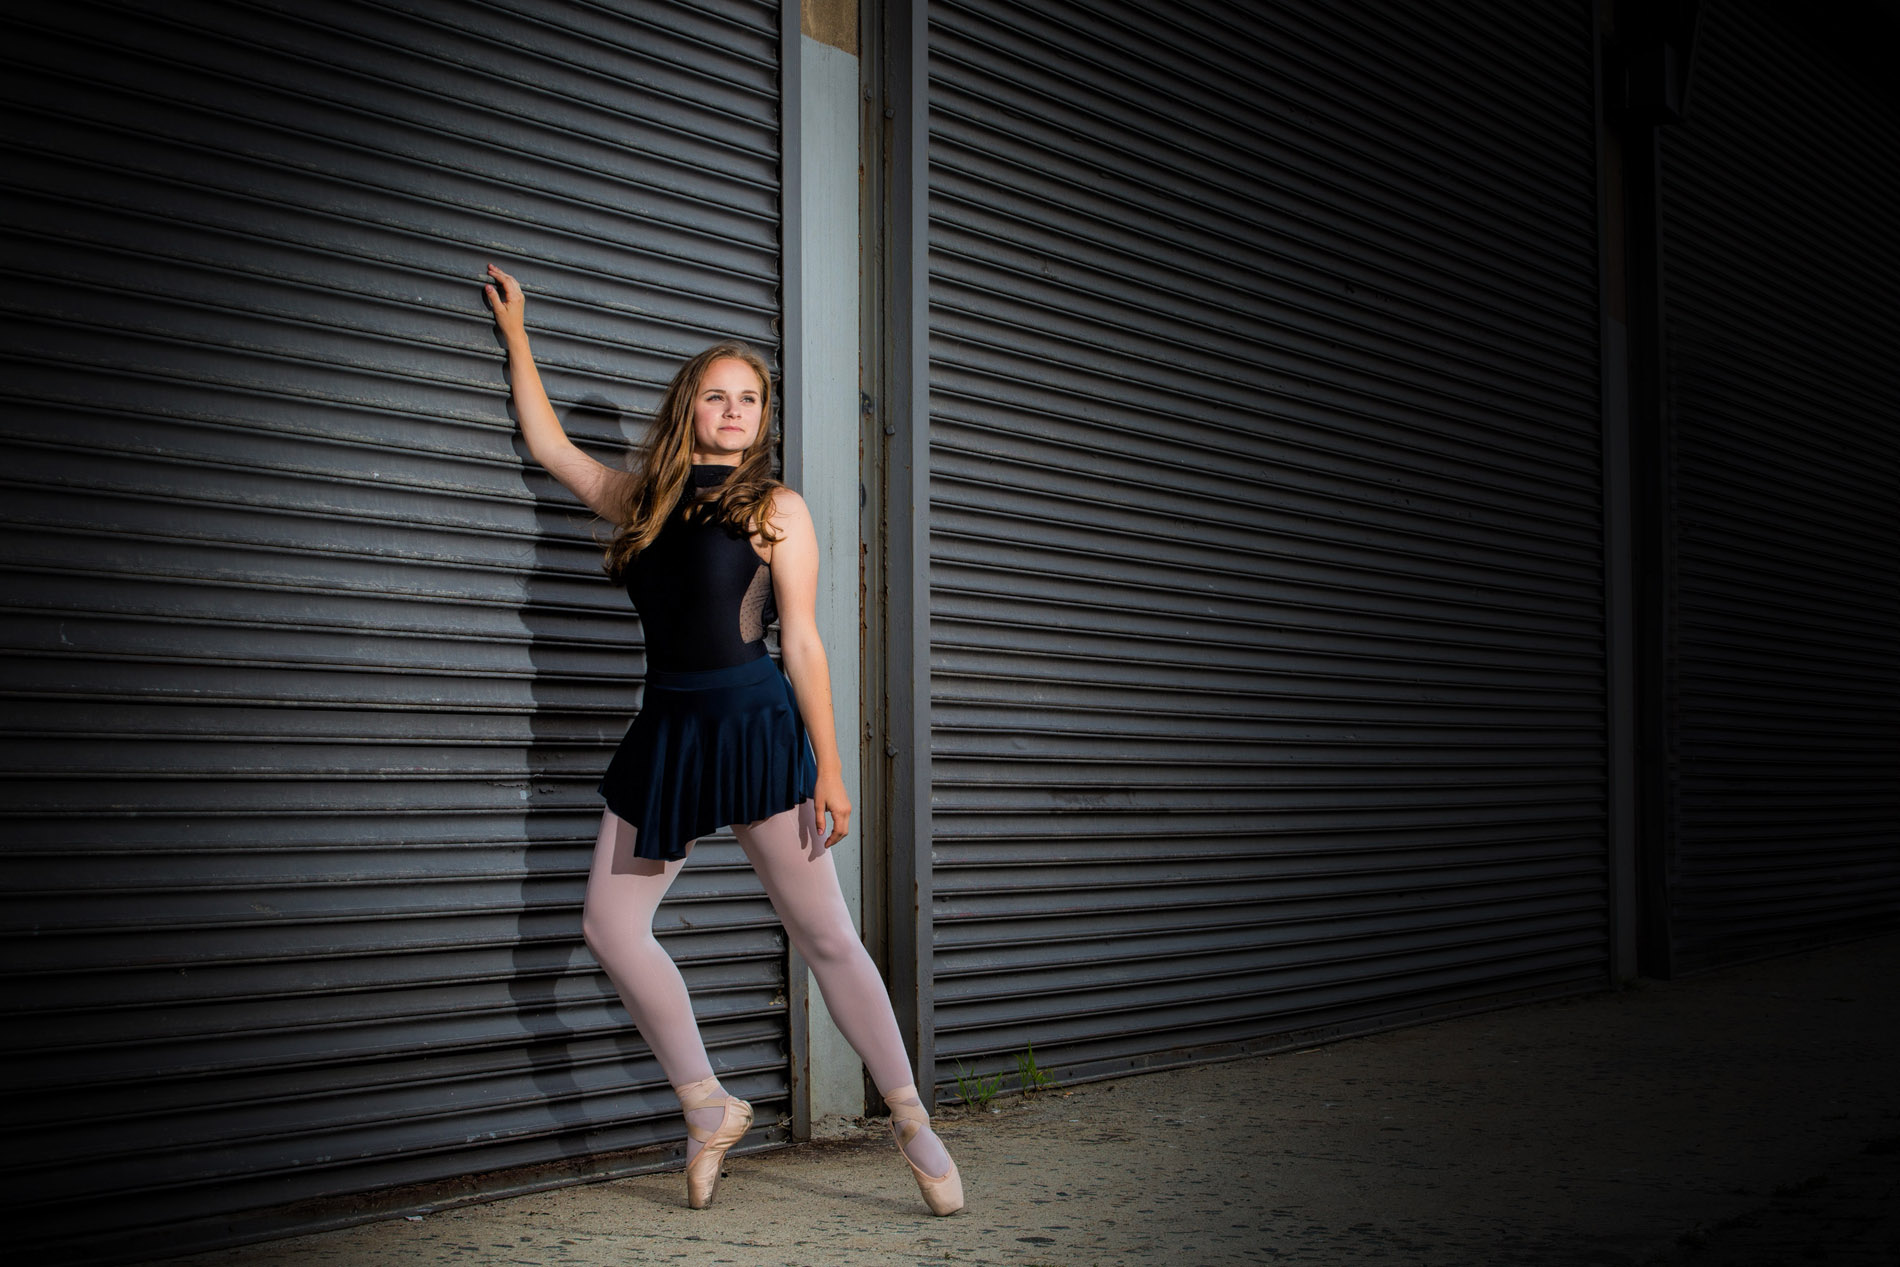 downtown portland's garage doors are backdrop for urban dance picture for high school senior